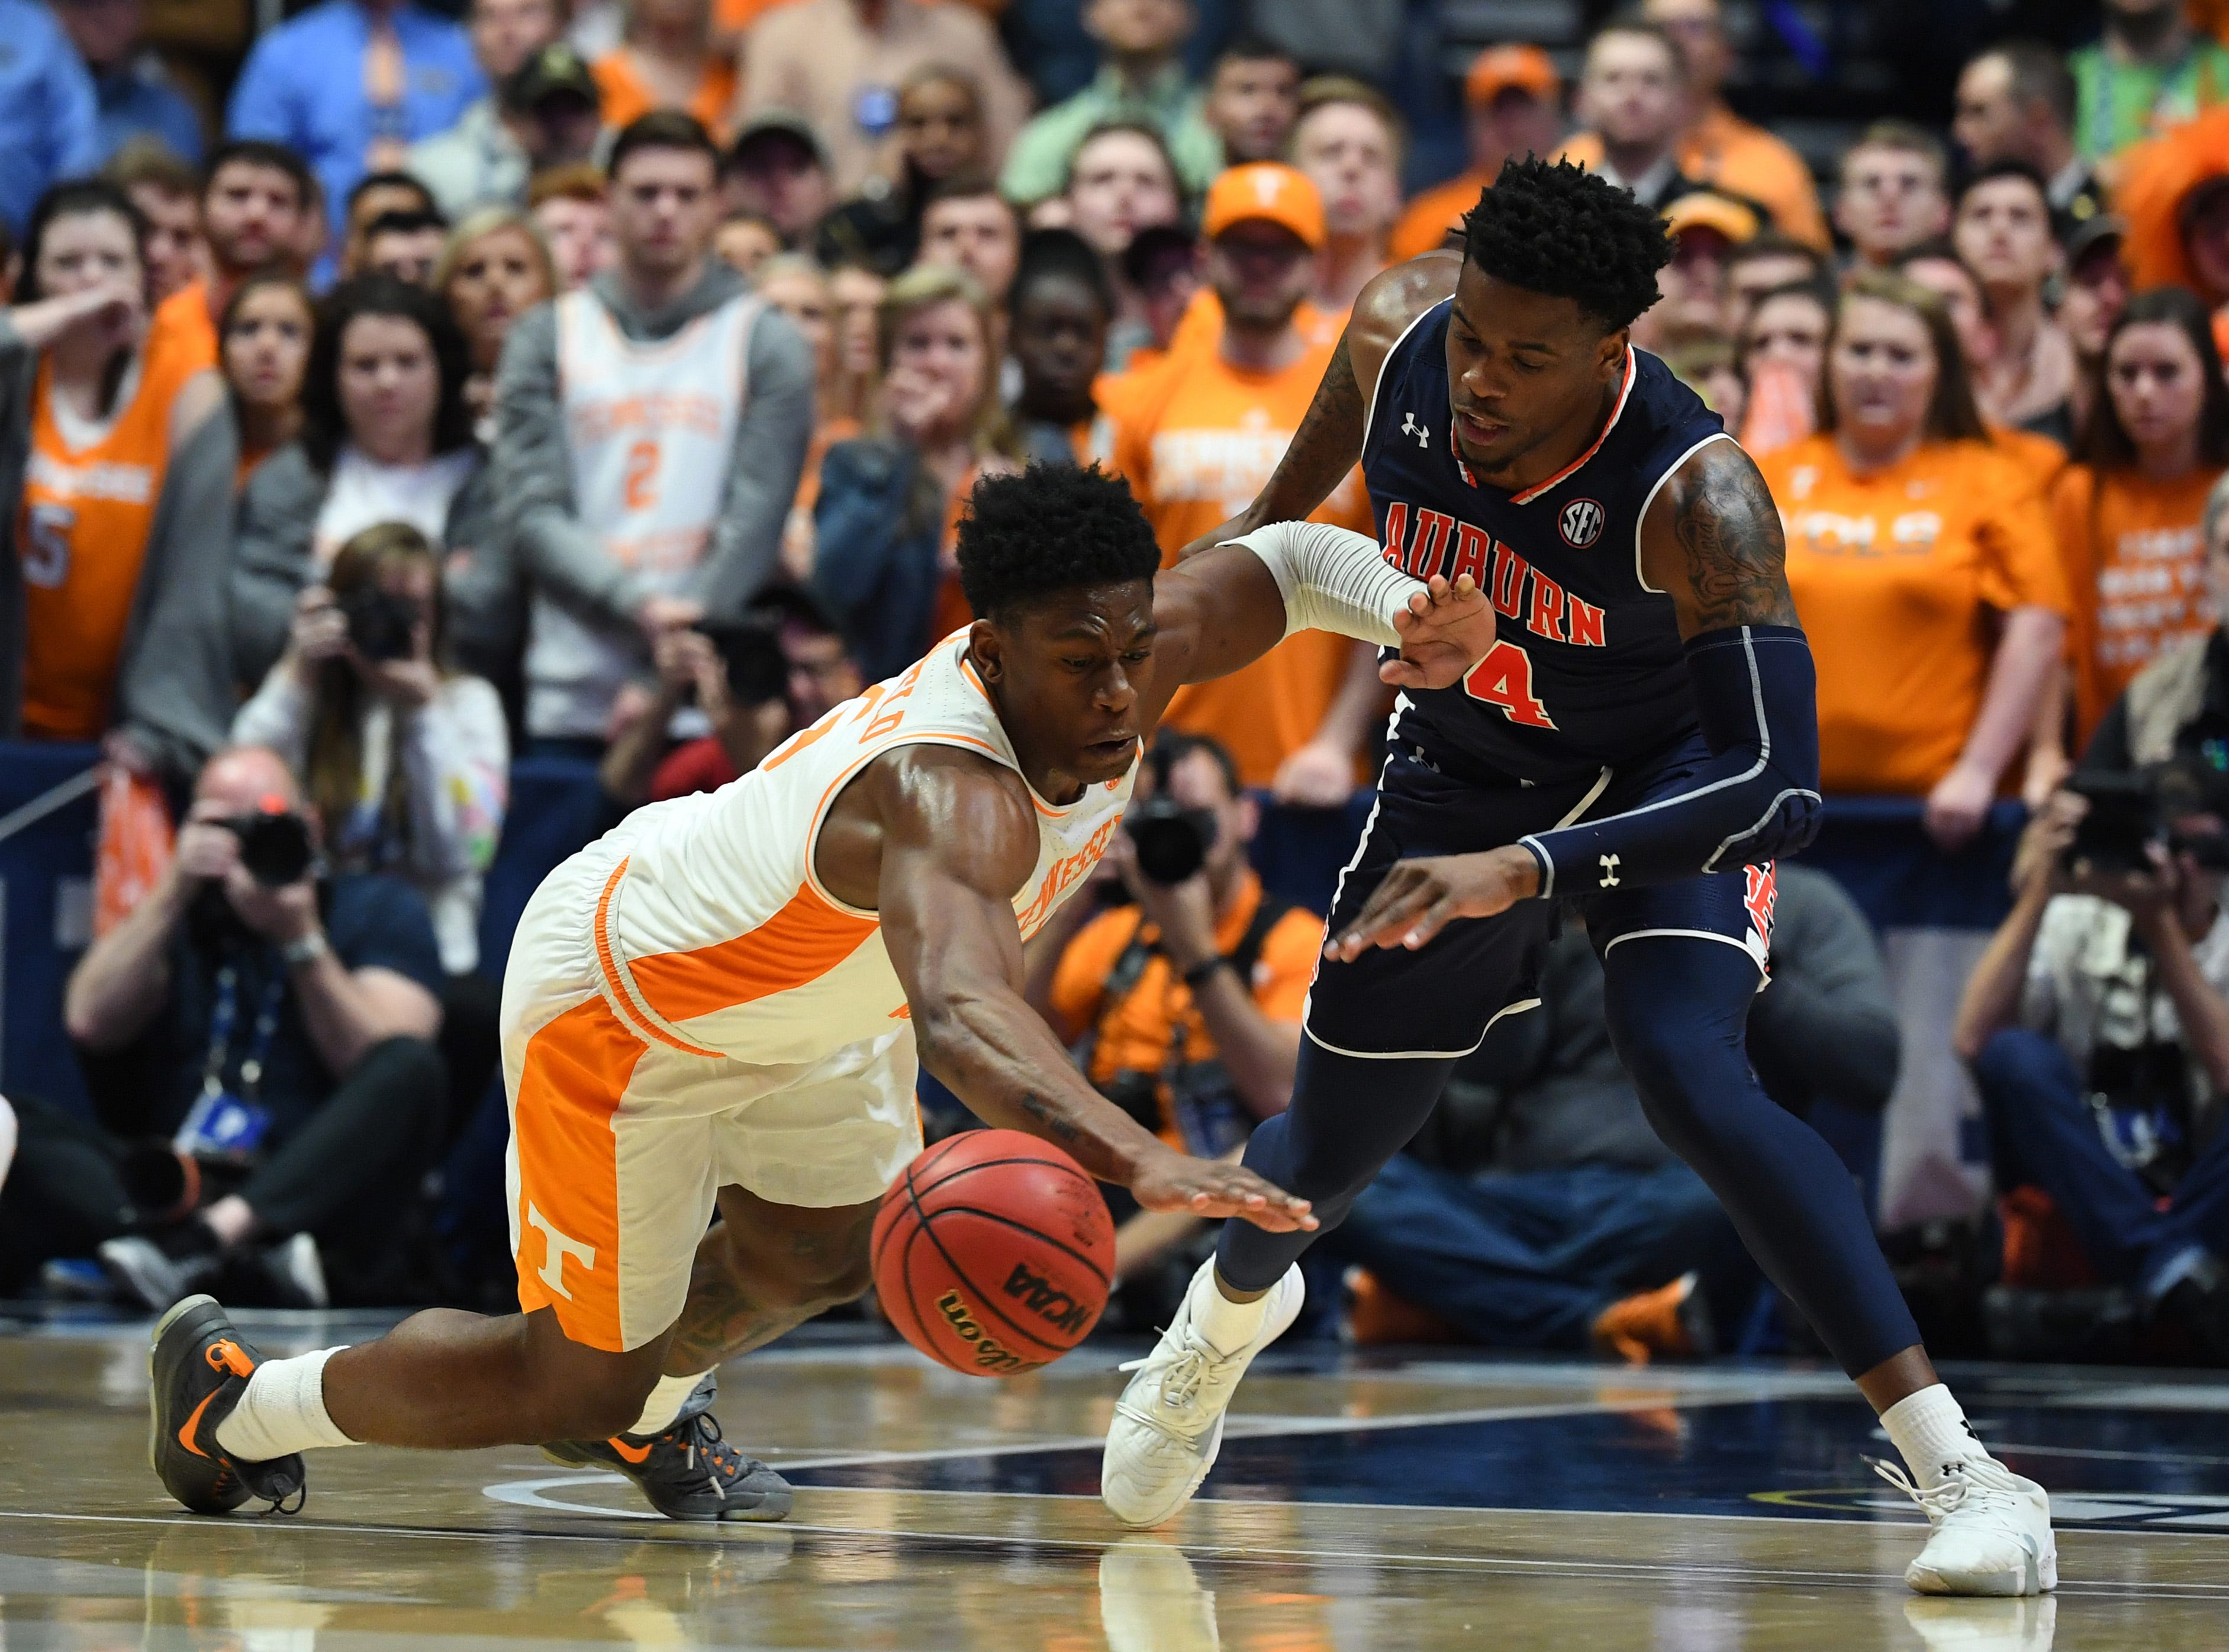 Mar 17, 2019; Nashville, TN, USA; Tennessee Volunteers guard Admiral Schofield (5) dives for a loose ball against Auburn Tigers guard Malik Dunbar (4) during the second half in the SEC conference tournament championship game at Bridgestone Arena. Mandatory Credit: Christopher Hanewinckel-USA TODAY Sports